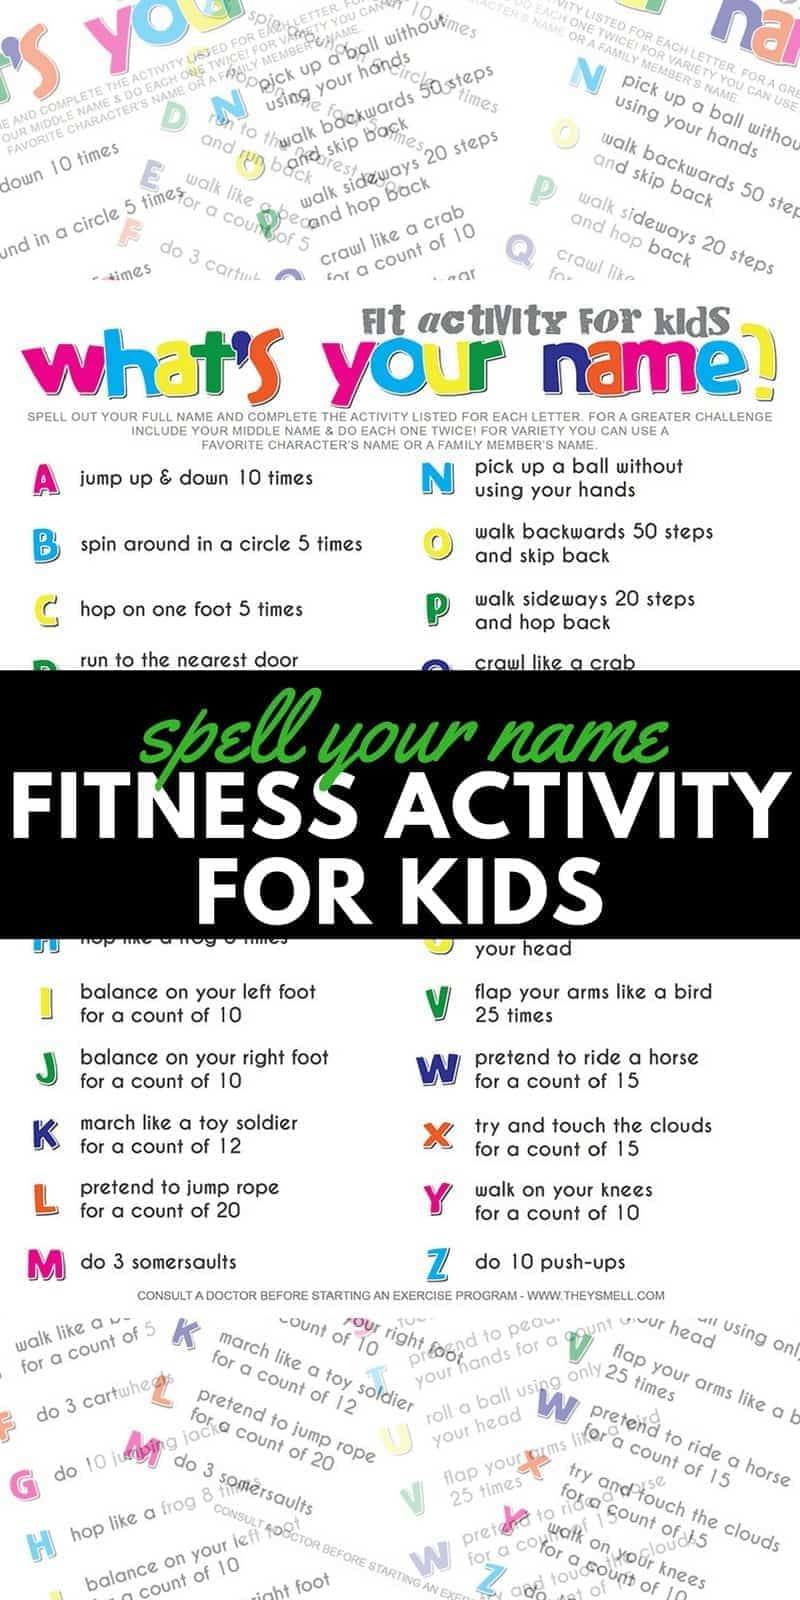 What's your name? Fitness activity printable for kids. Your kids will get a workout without realizing it when you make fitness into a fun game with this spell your name workout. #fitness #kids #kidsactivities #homeschool #homeschooling #teacher #physed